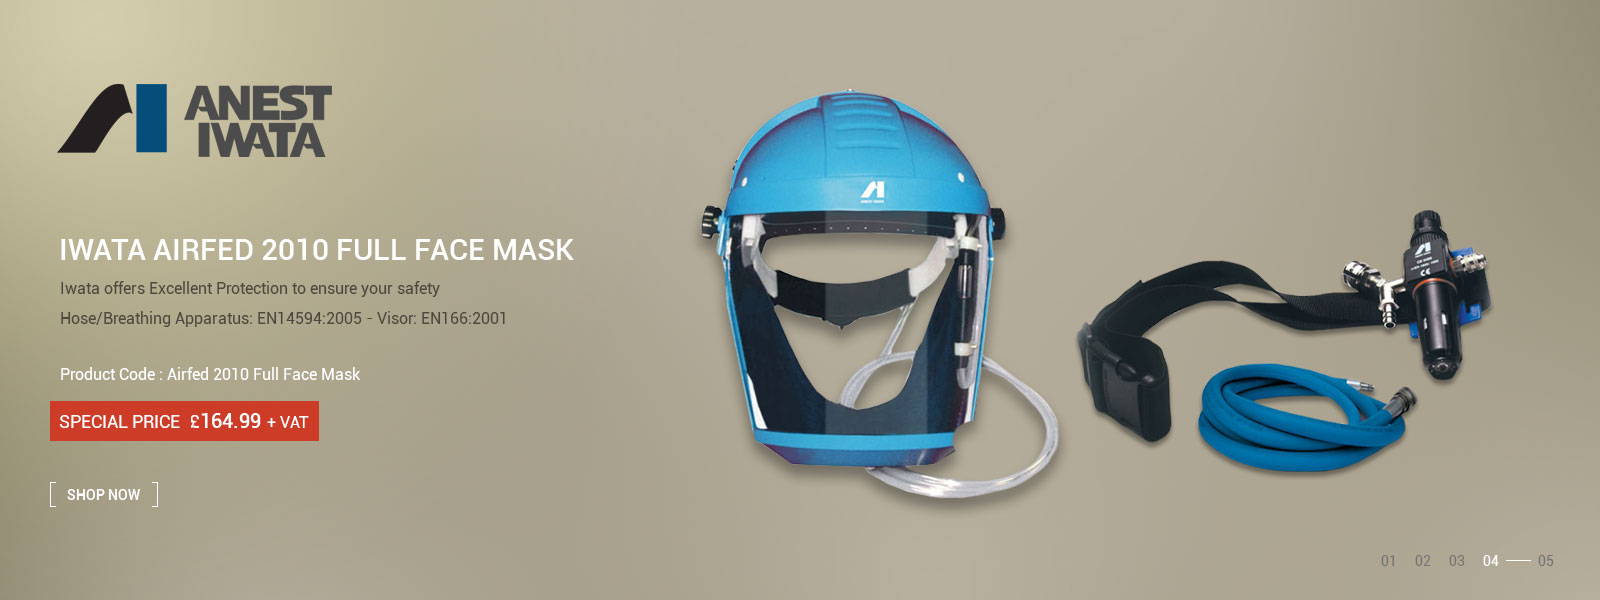 03 Iwata Airfed 2010 Full Face Mask